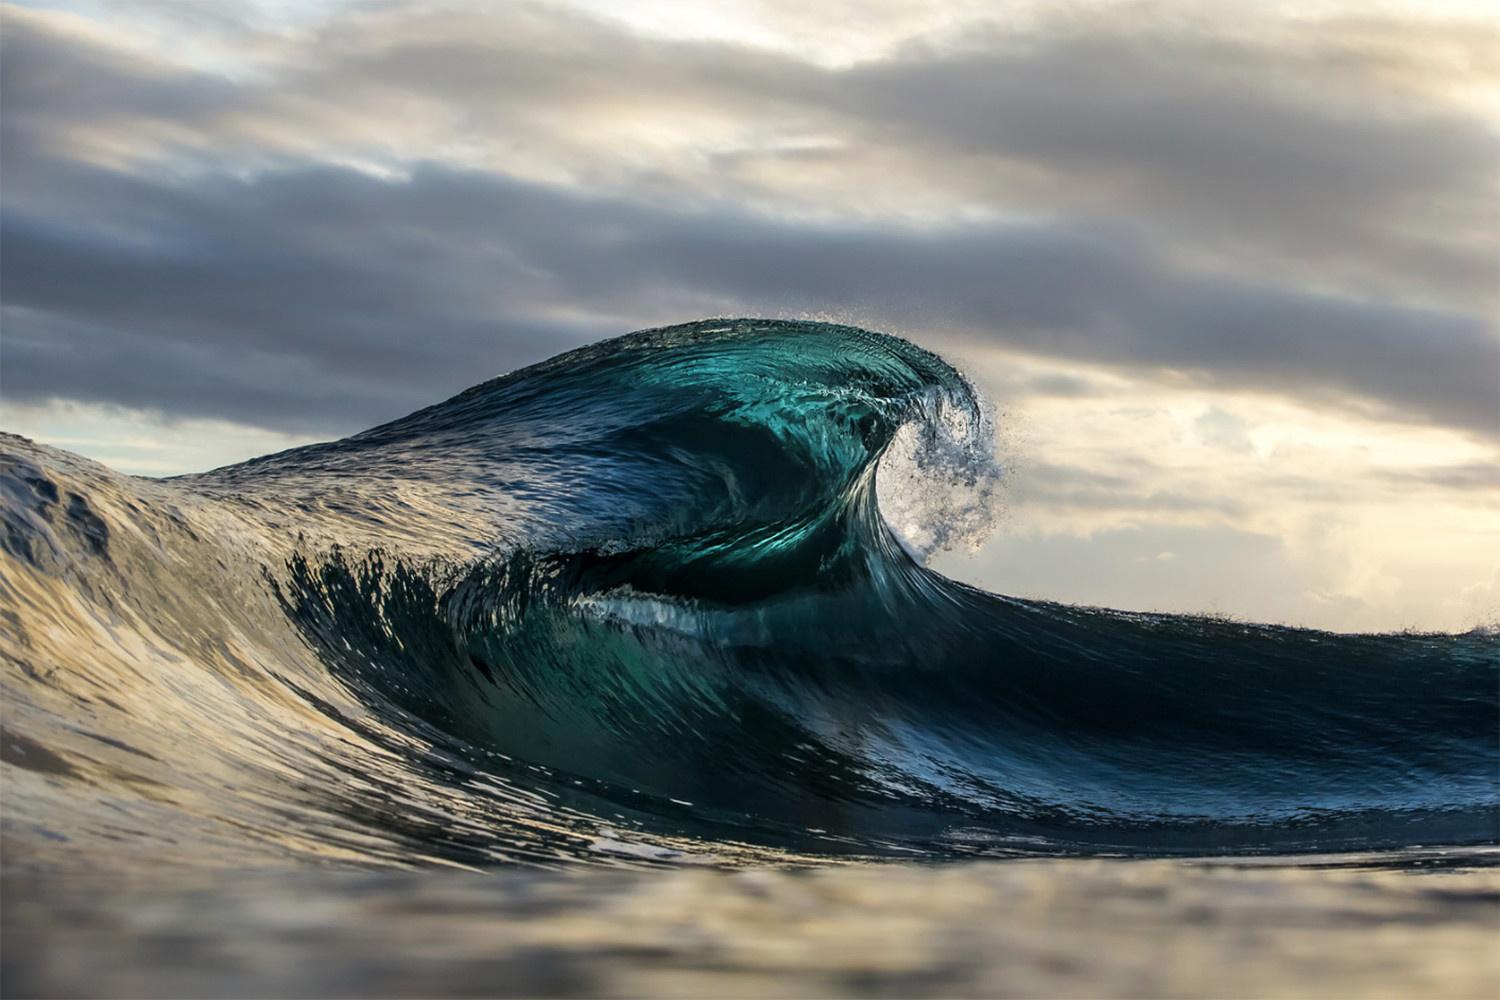 beautiful wave by Ben Thouard